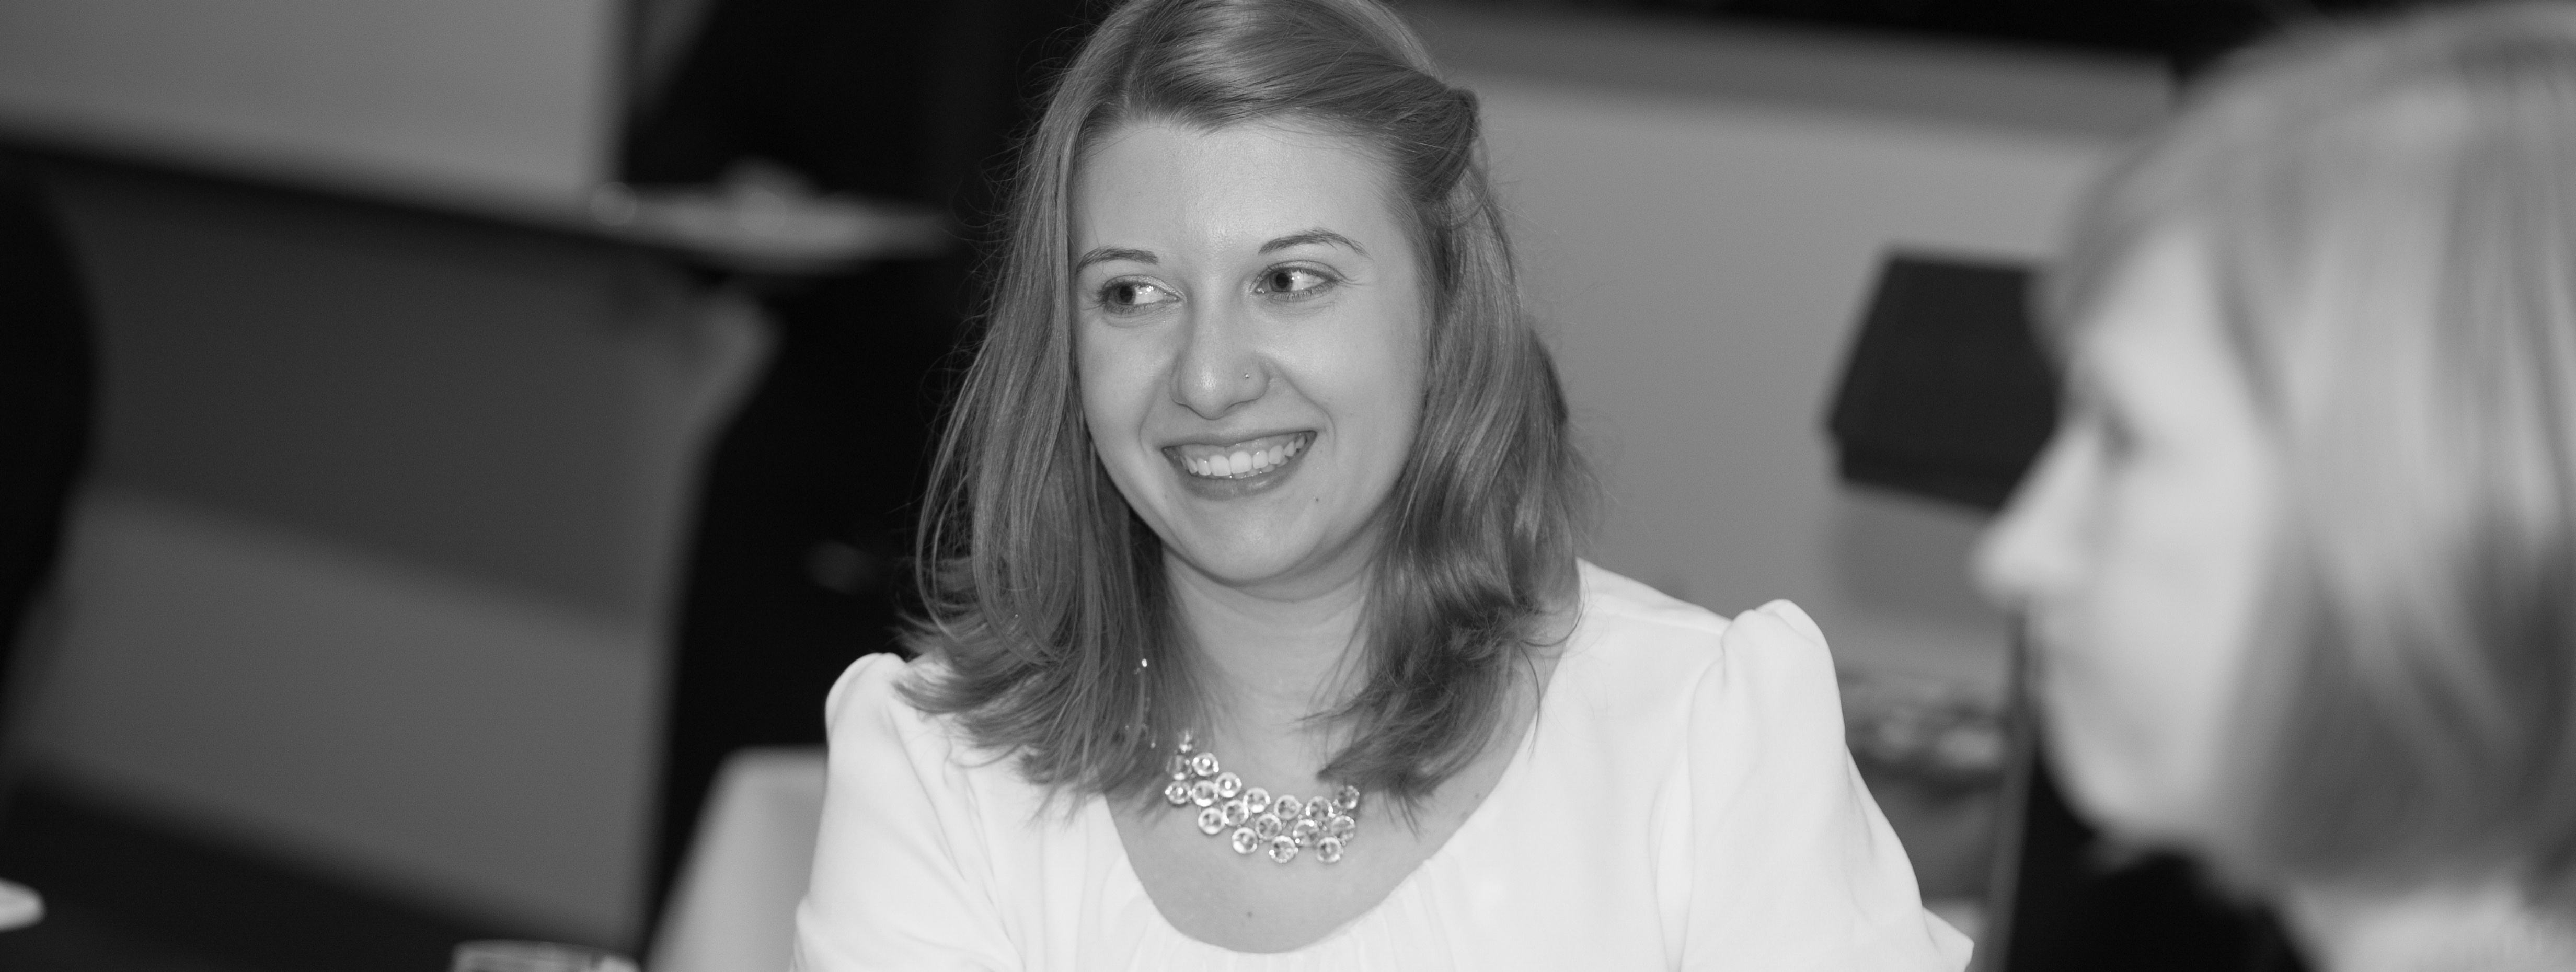 Adrianne Rolland works with our client management department to ensure extraordinary service is given to clients.